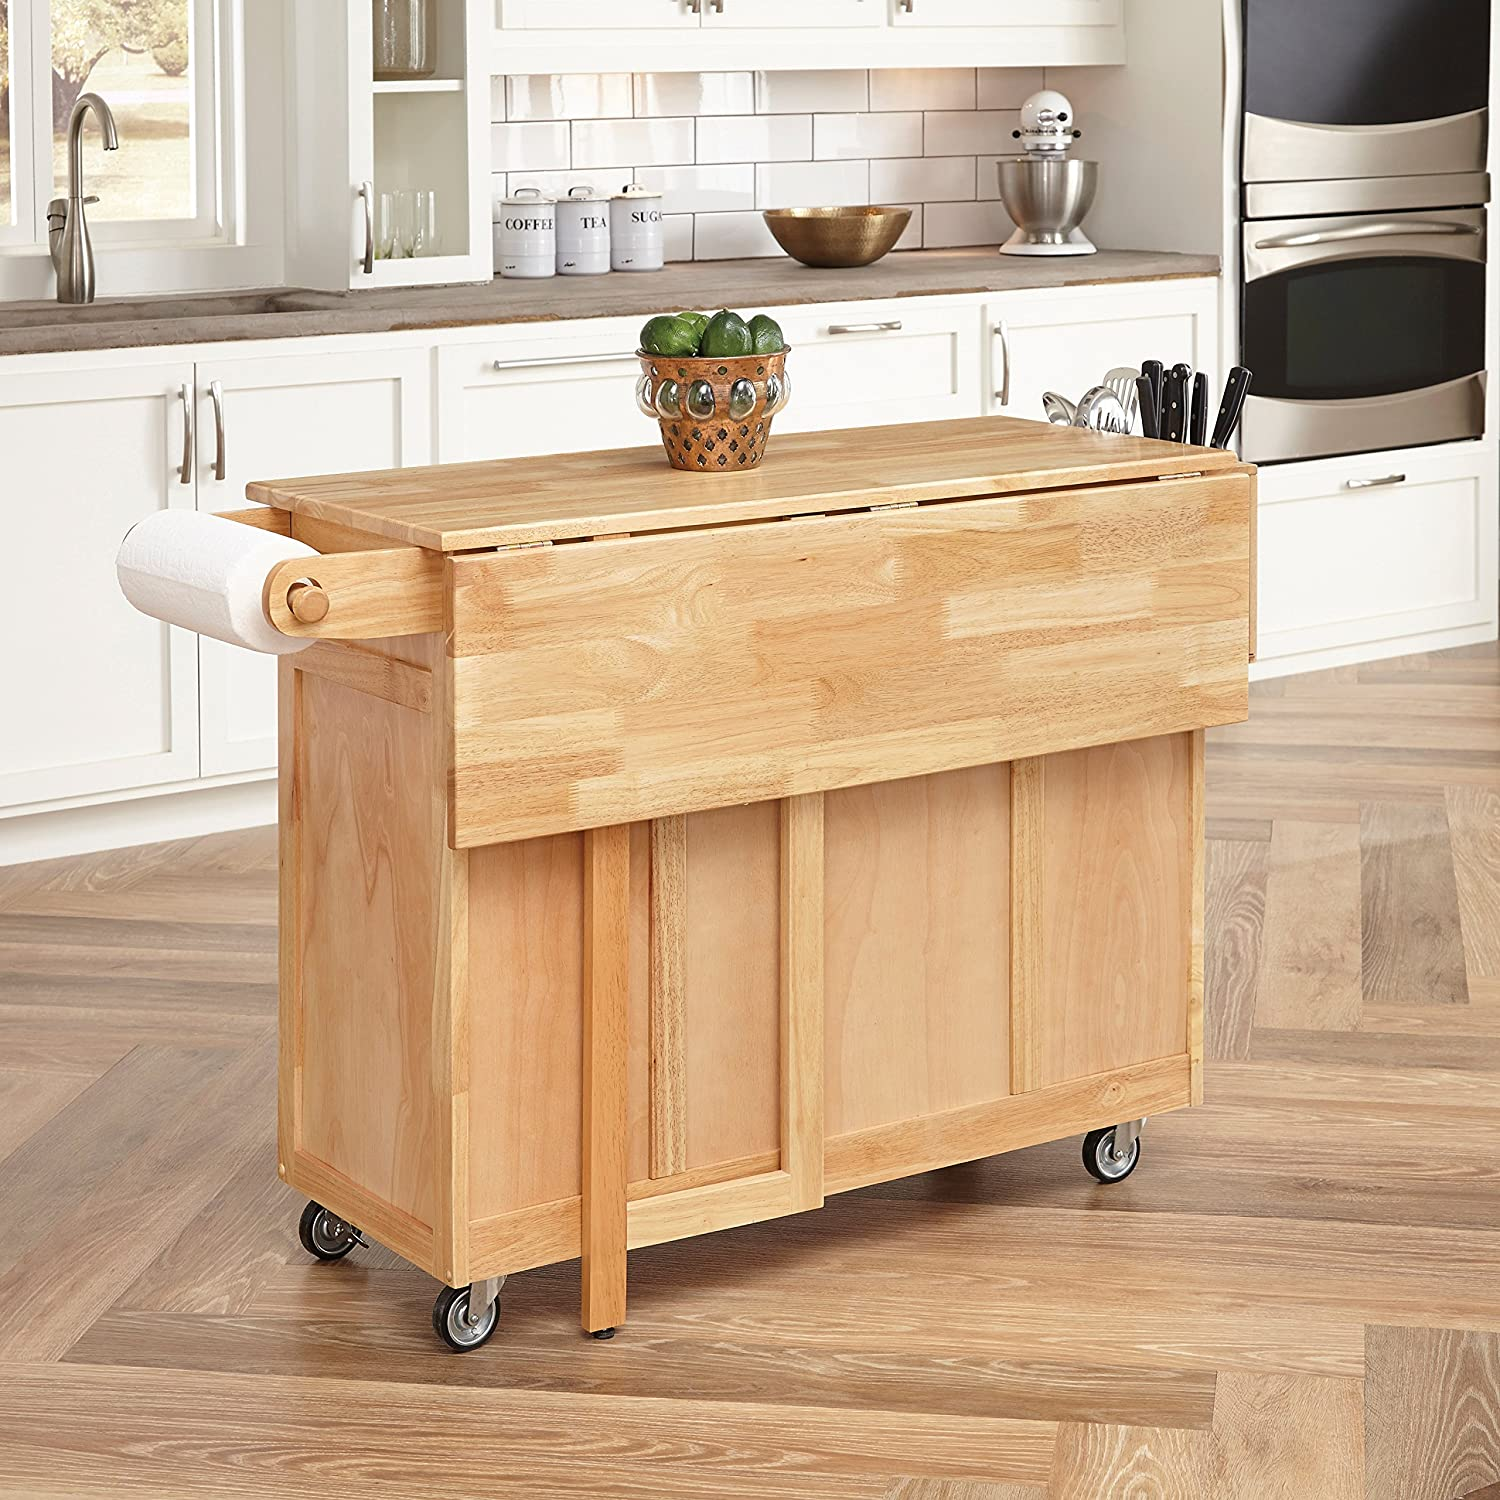 amazon com  home styles 5023 95 wood top kitchen cart with breakfast bar natural finish  kitchen  u0026 dining amazon com  home styles 5023 95 wood top kitchen cart with      rh   amazon com